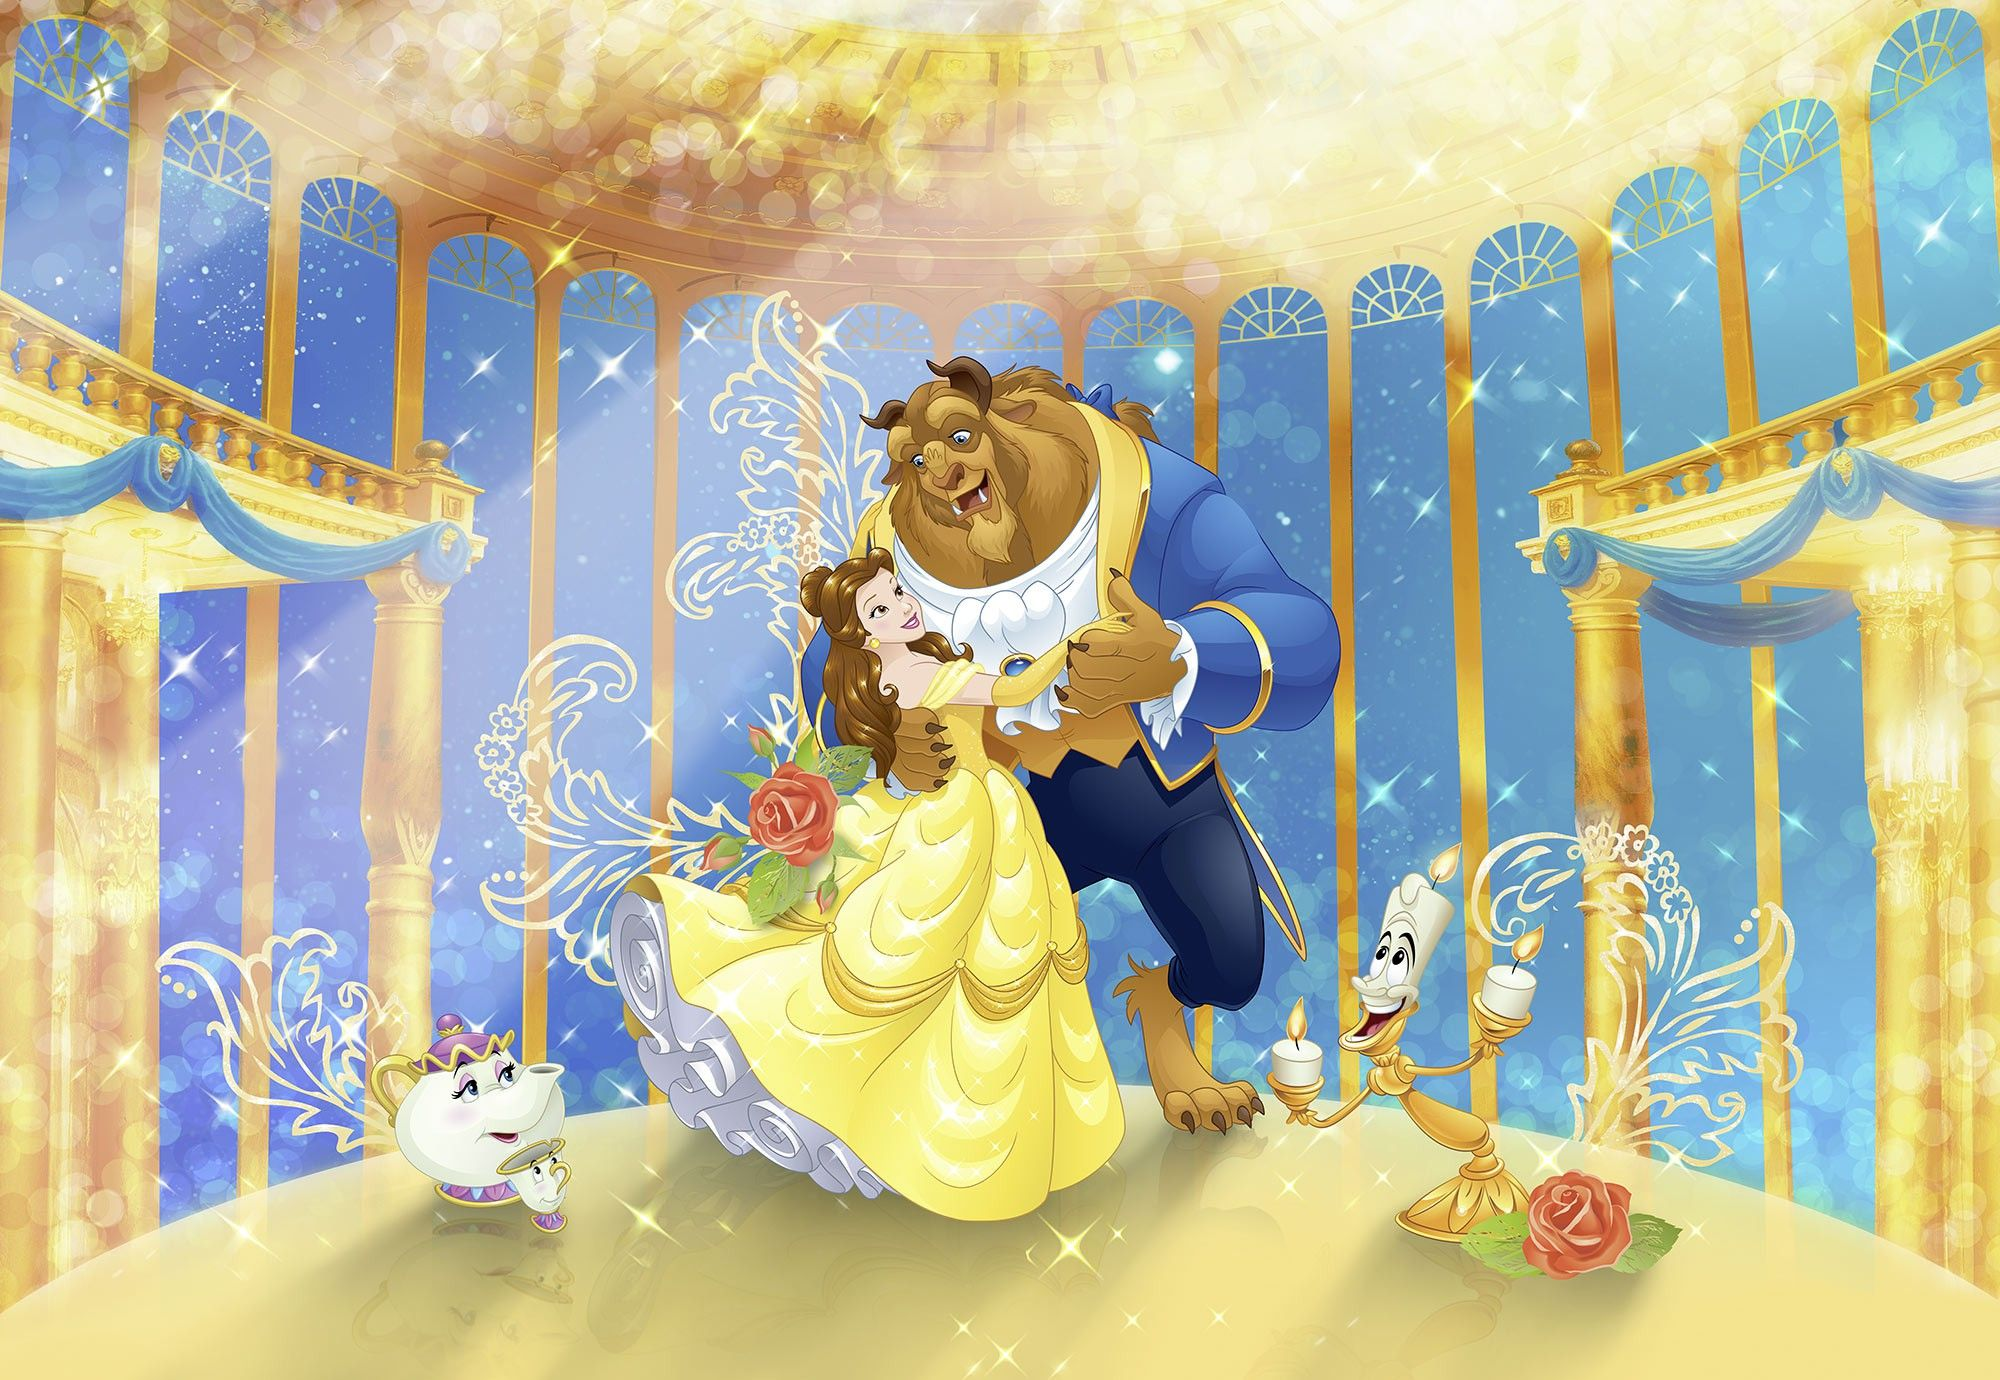 368x254cm Wall Mural Wallpaper Disney Character Beauty And The